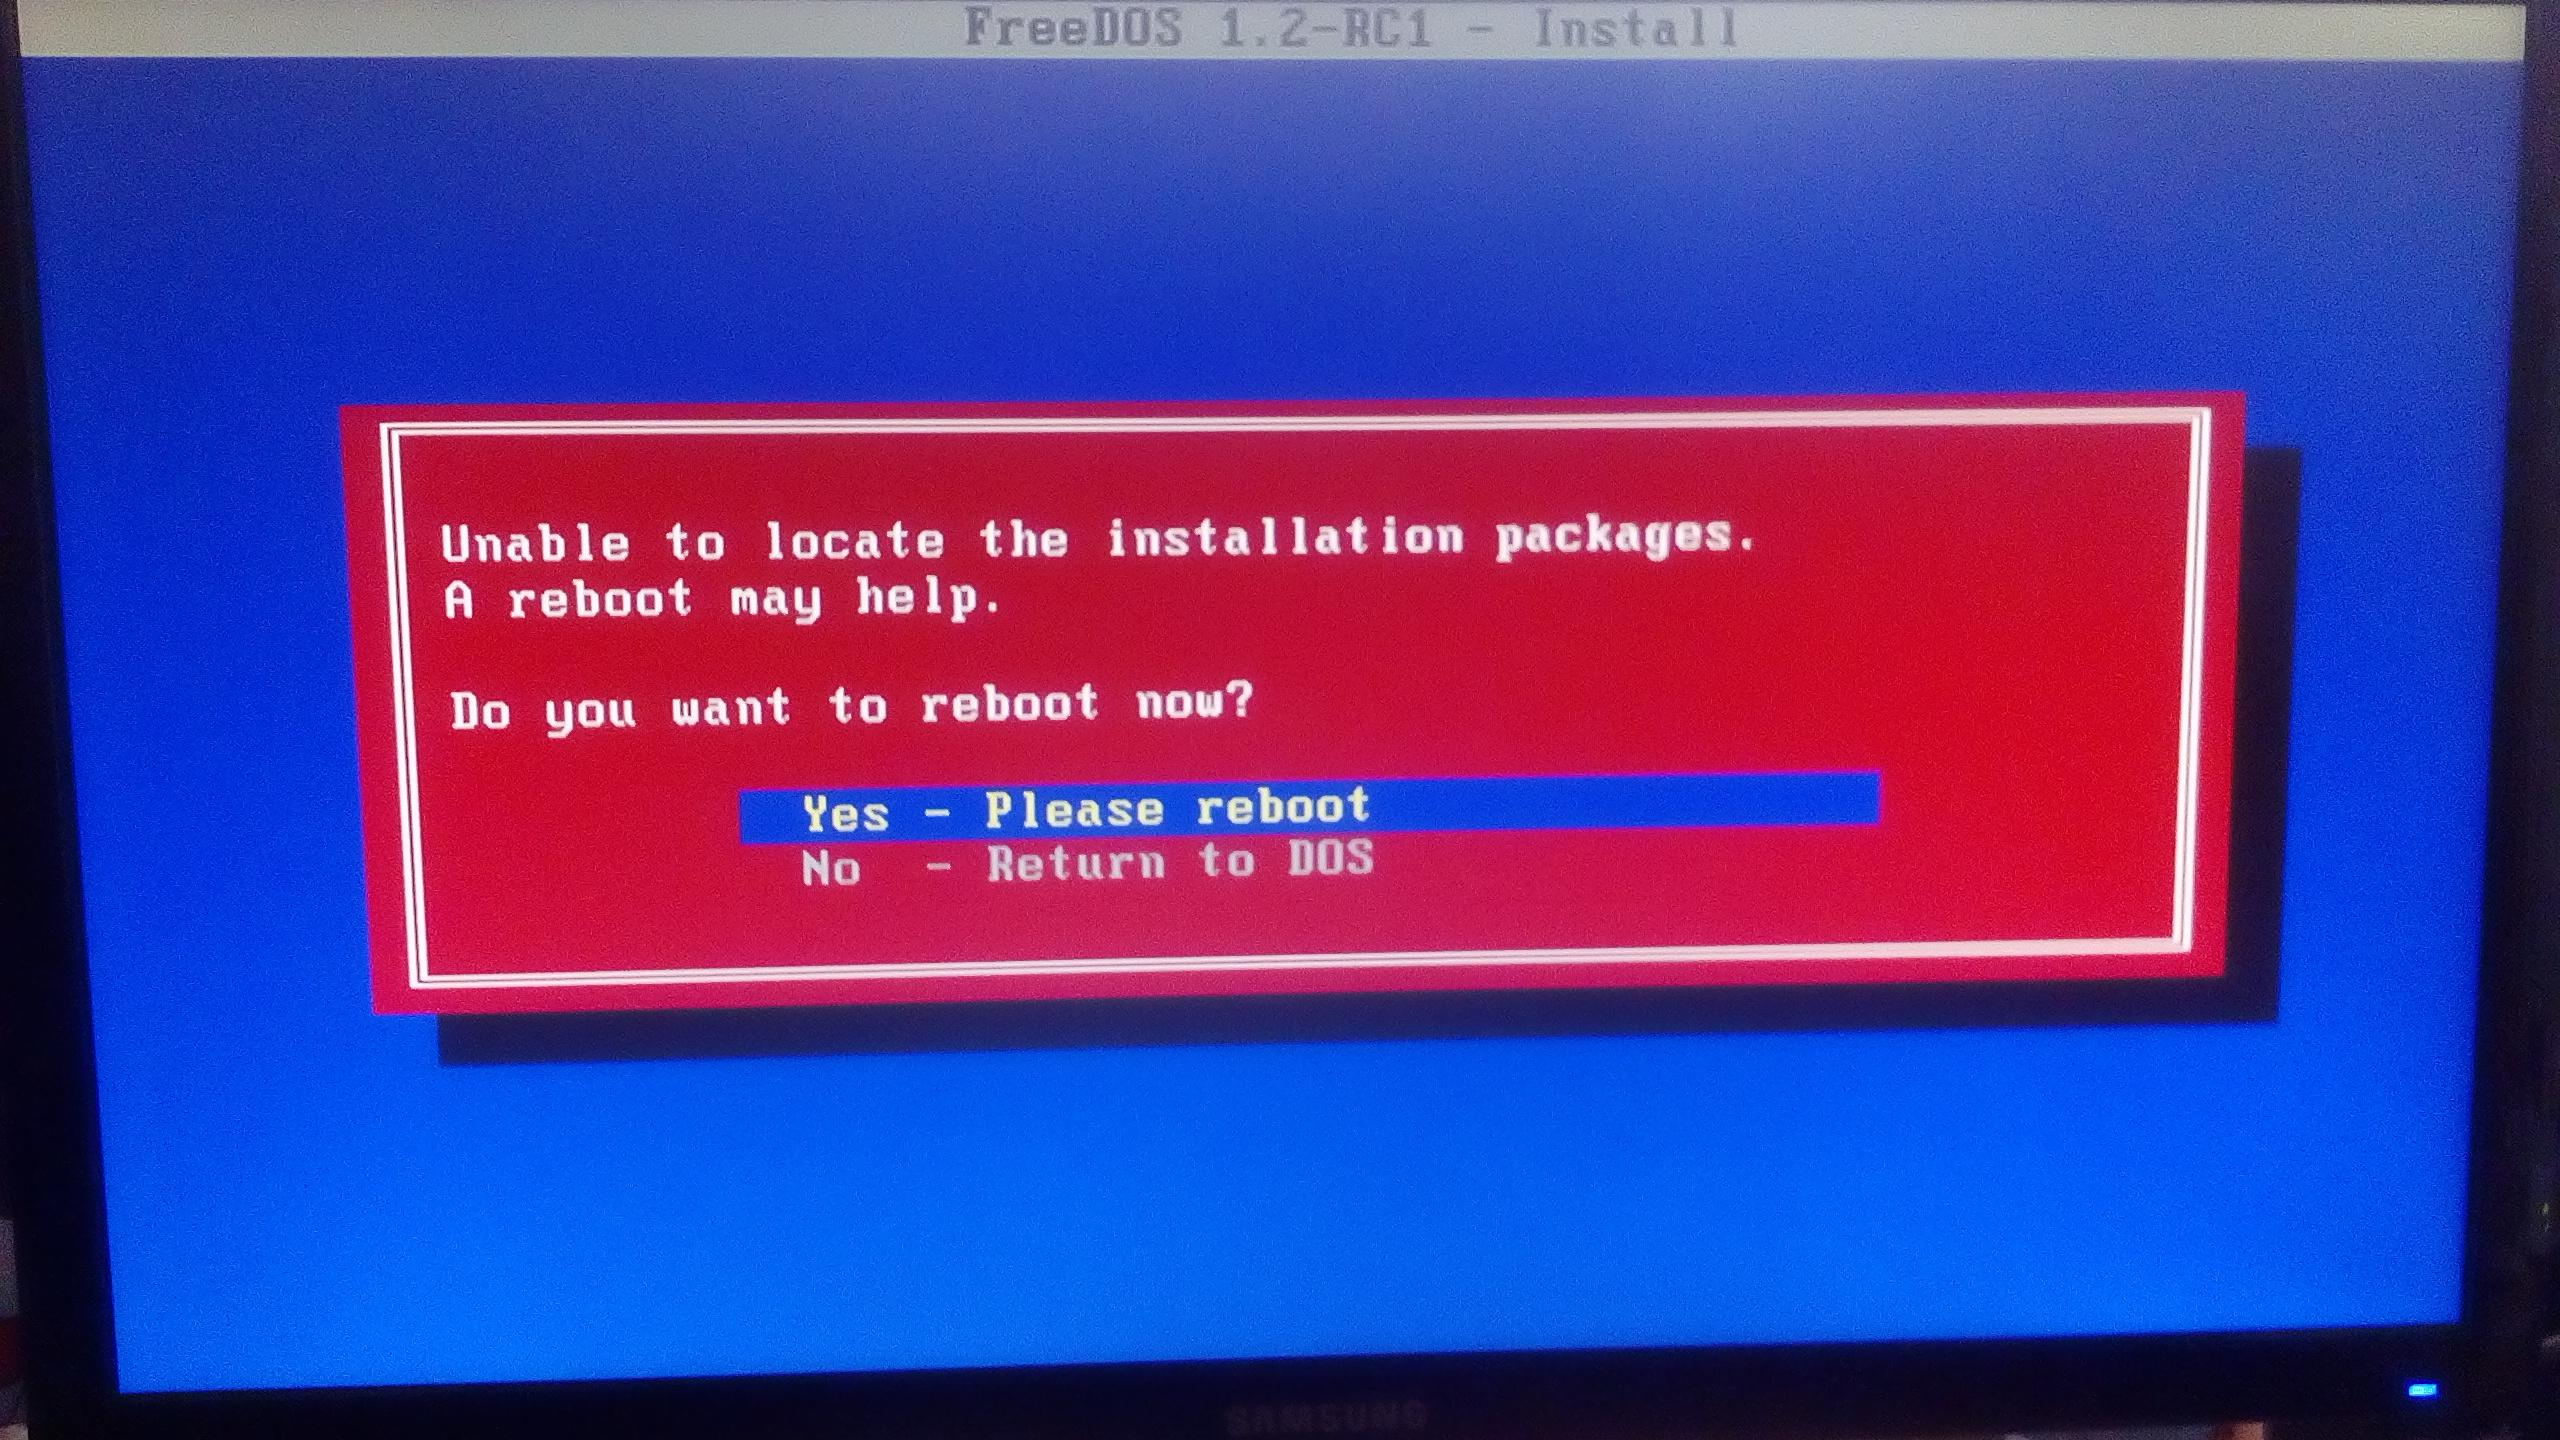 The FreeDOS Project / Bugs / #158 unable to locate the